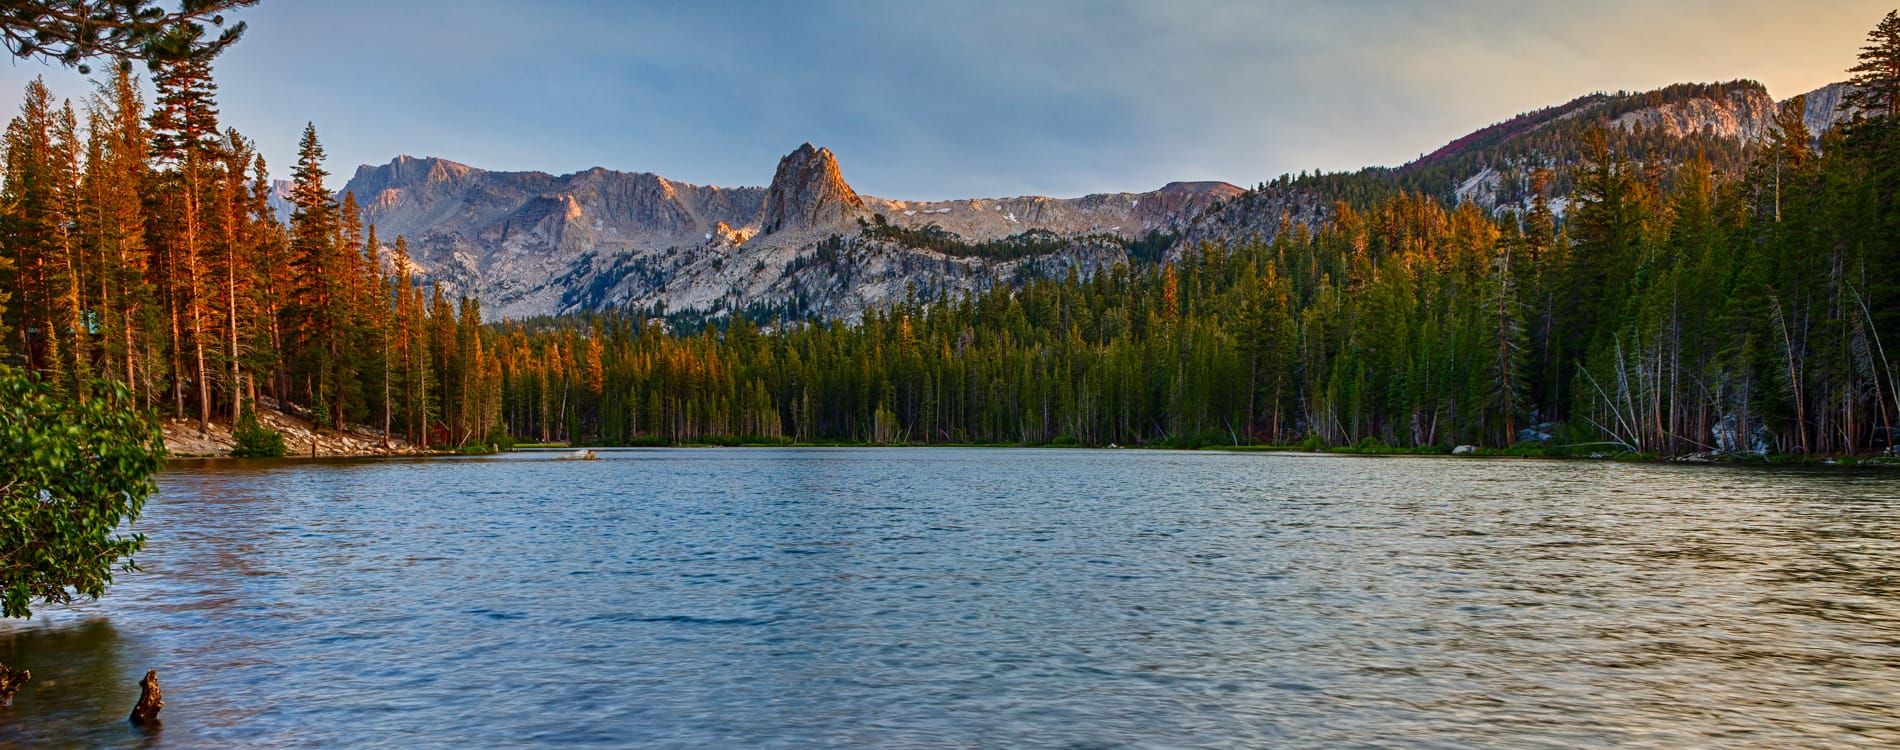 Mammoth Lakes - Lake Mamie